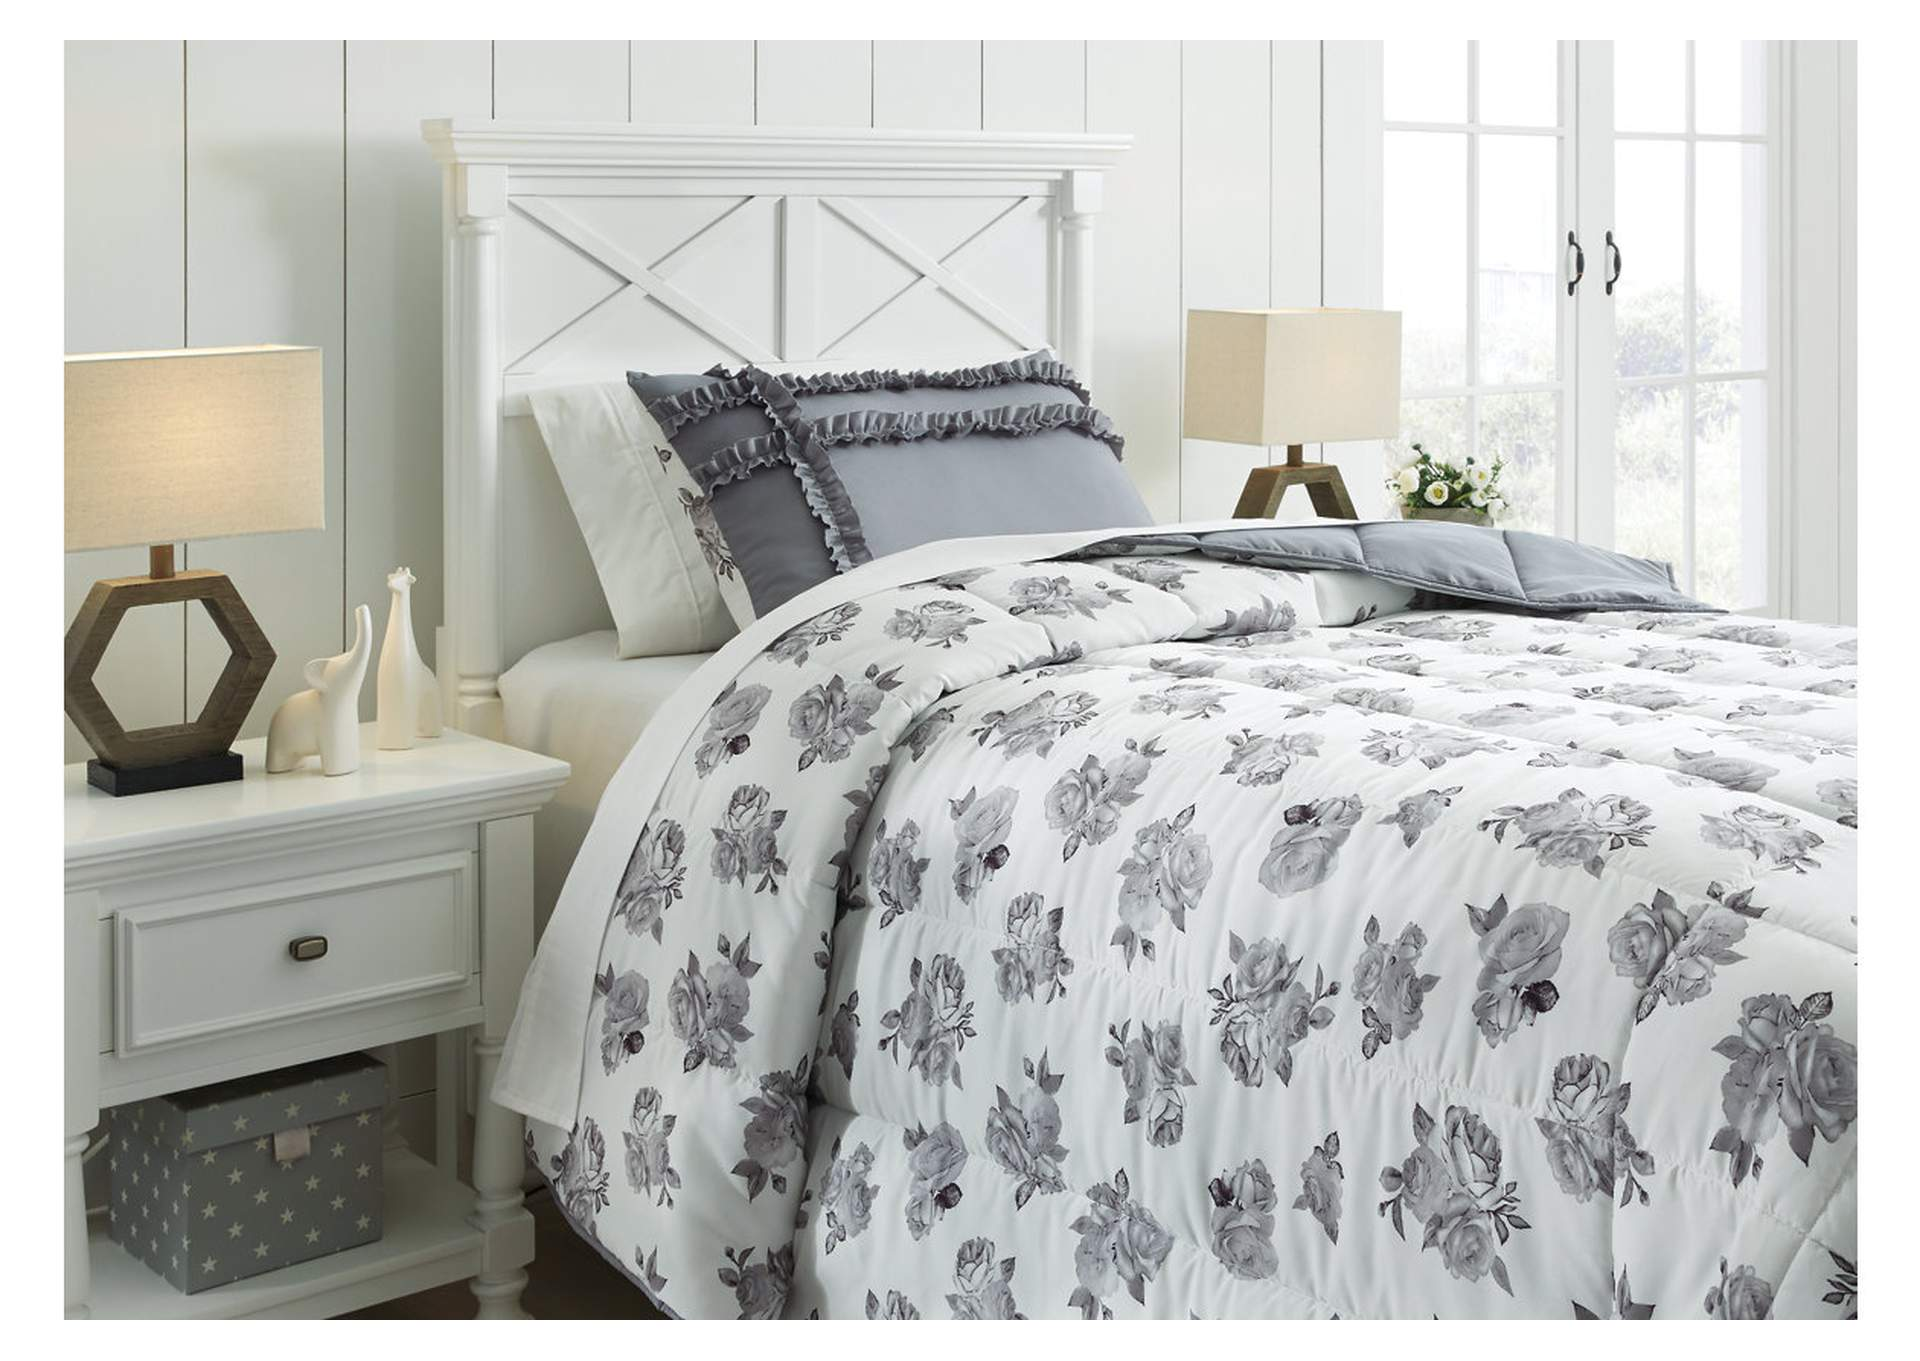 Meghdad Gray/White 2-Piece Twin Comforter Set,Signature Design By Ashley